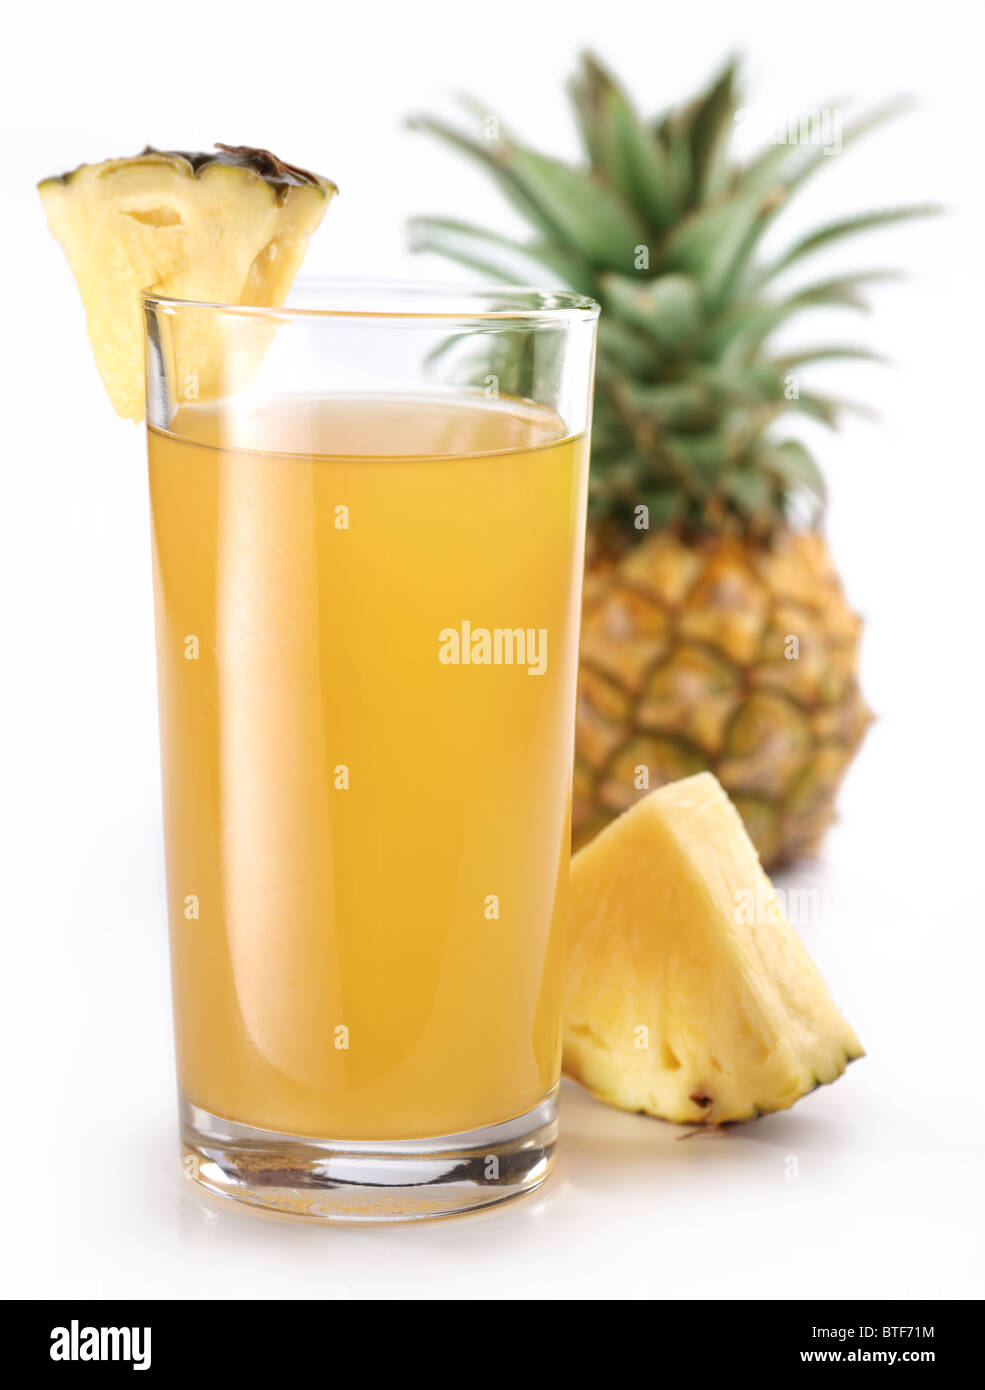 Full glass of fresh pineapple juice and pineapple fruit on the back. - Stock Image